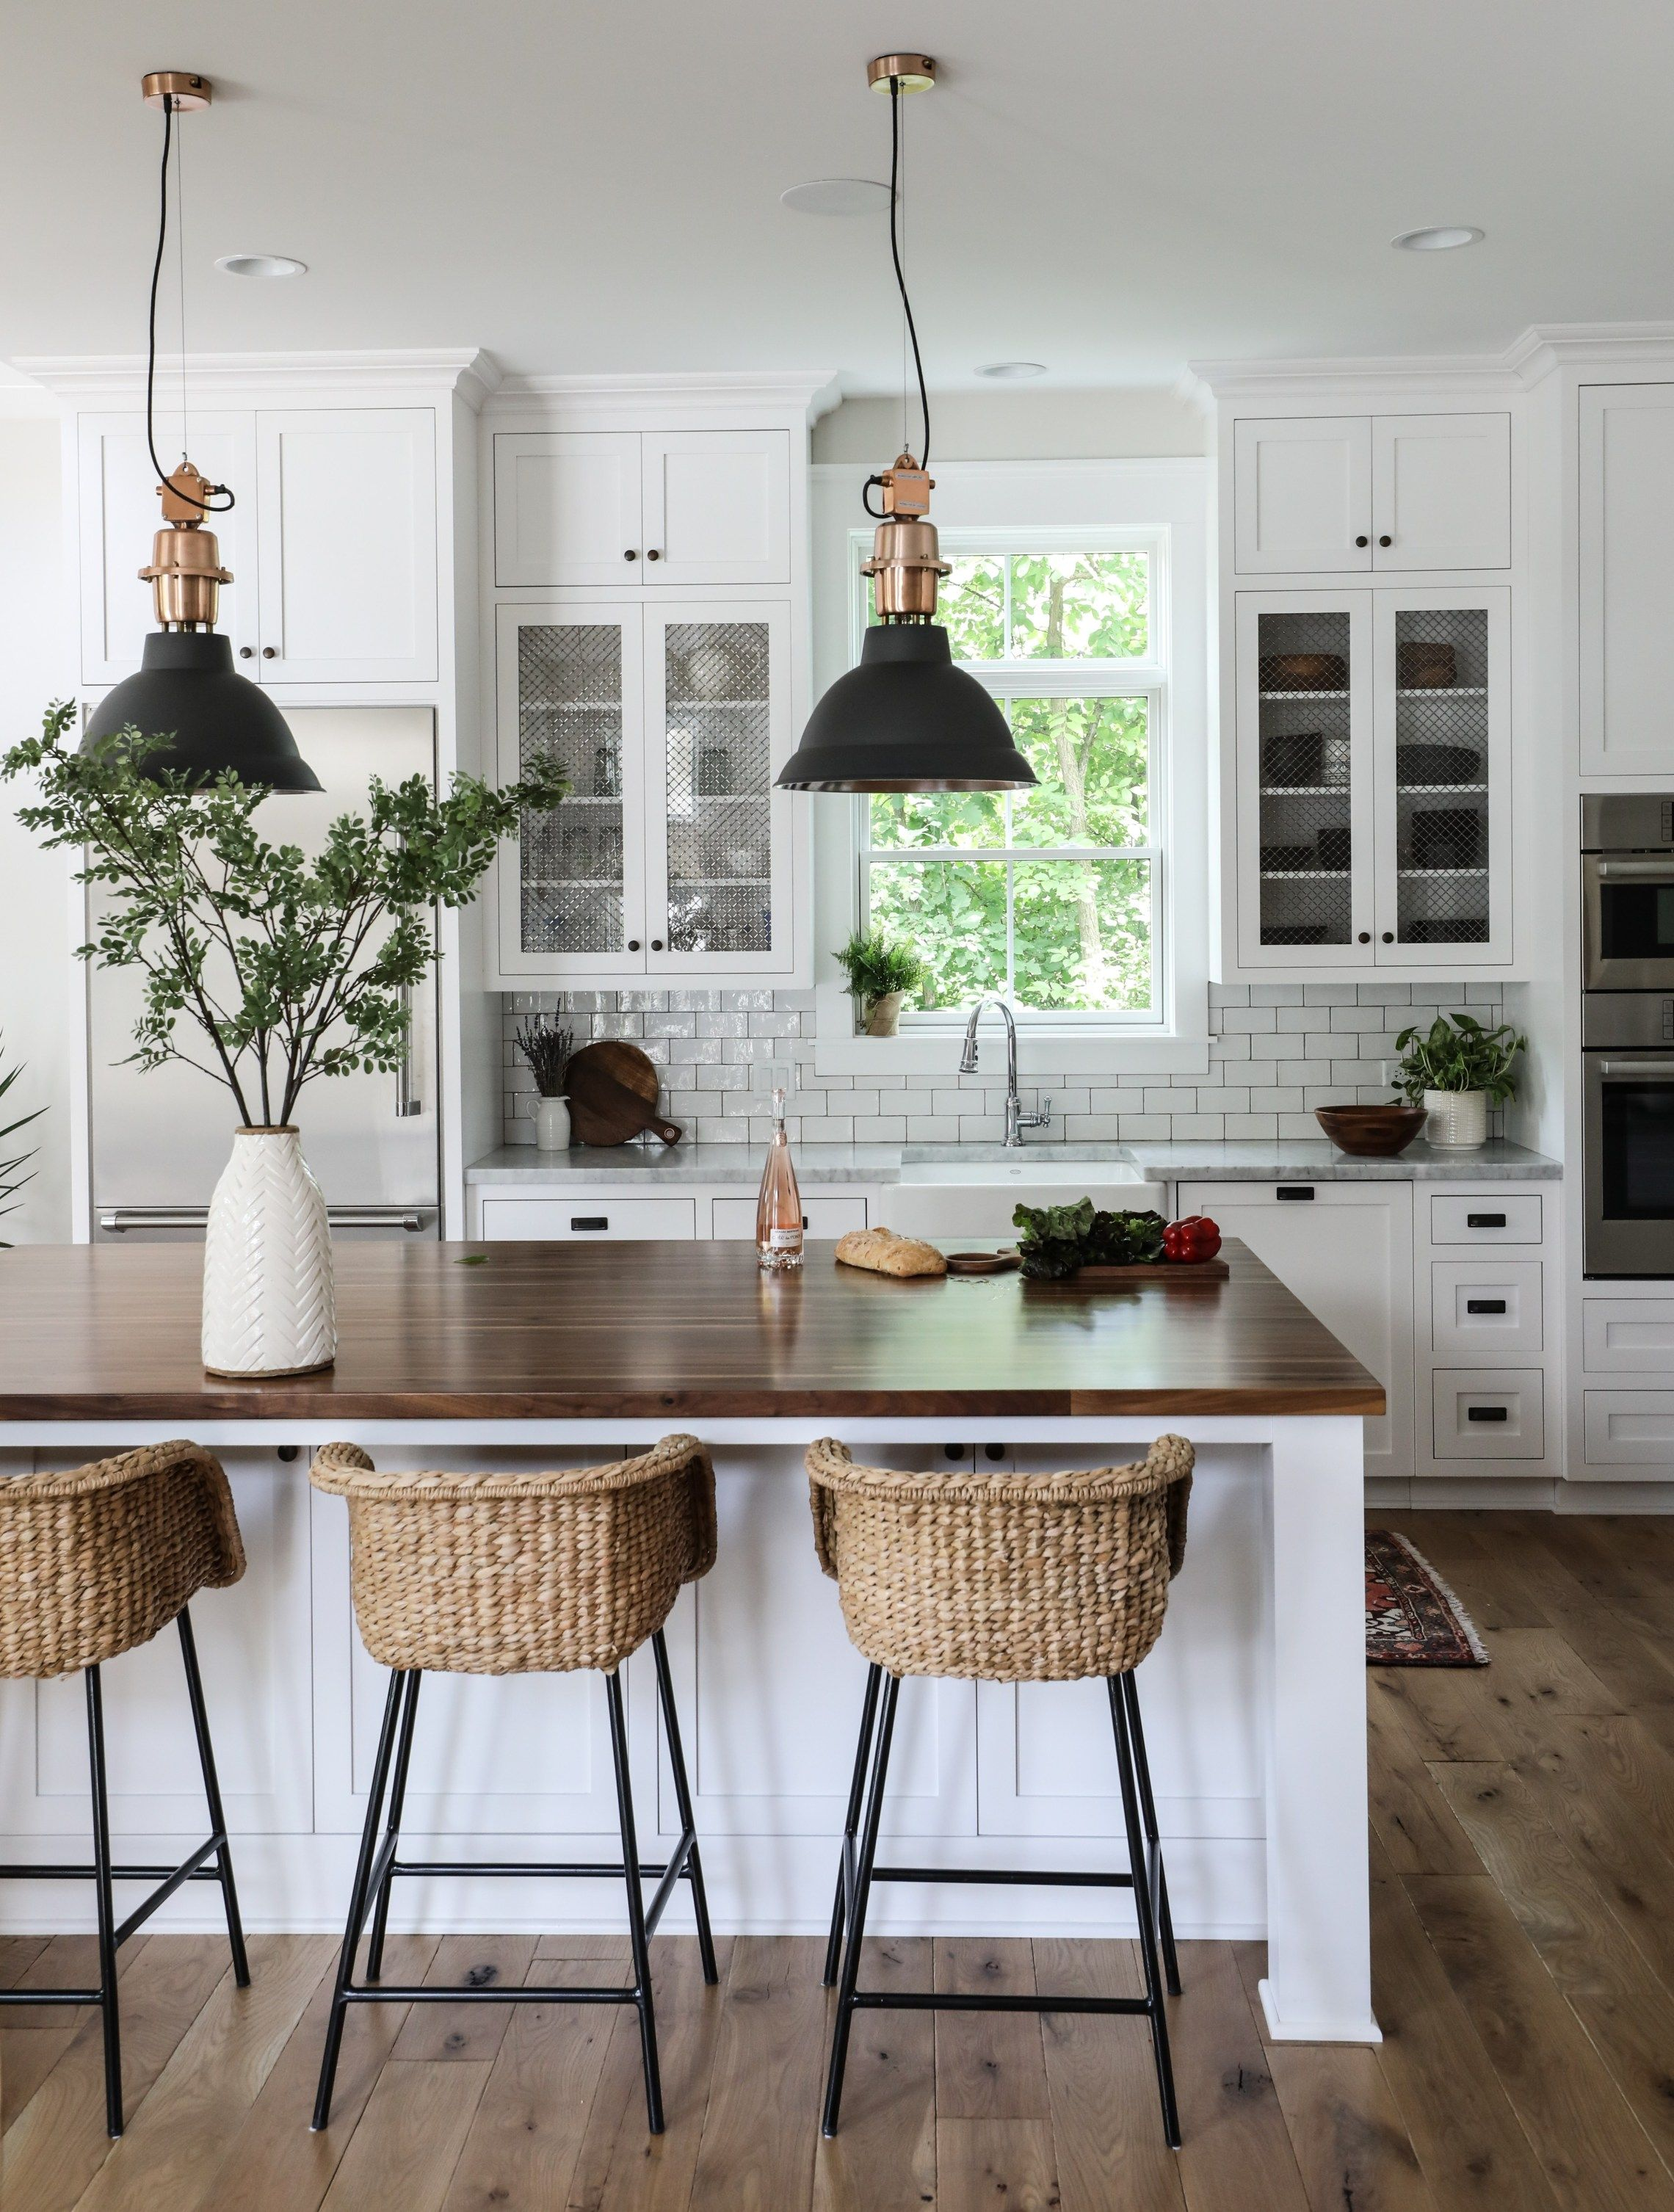 7 Defining Features of Farmhouse Kitchens | Hunker #interiordesign